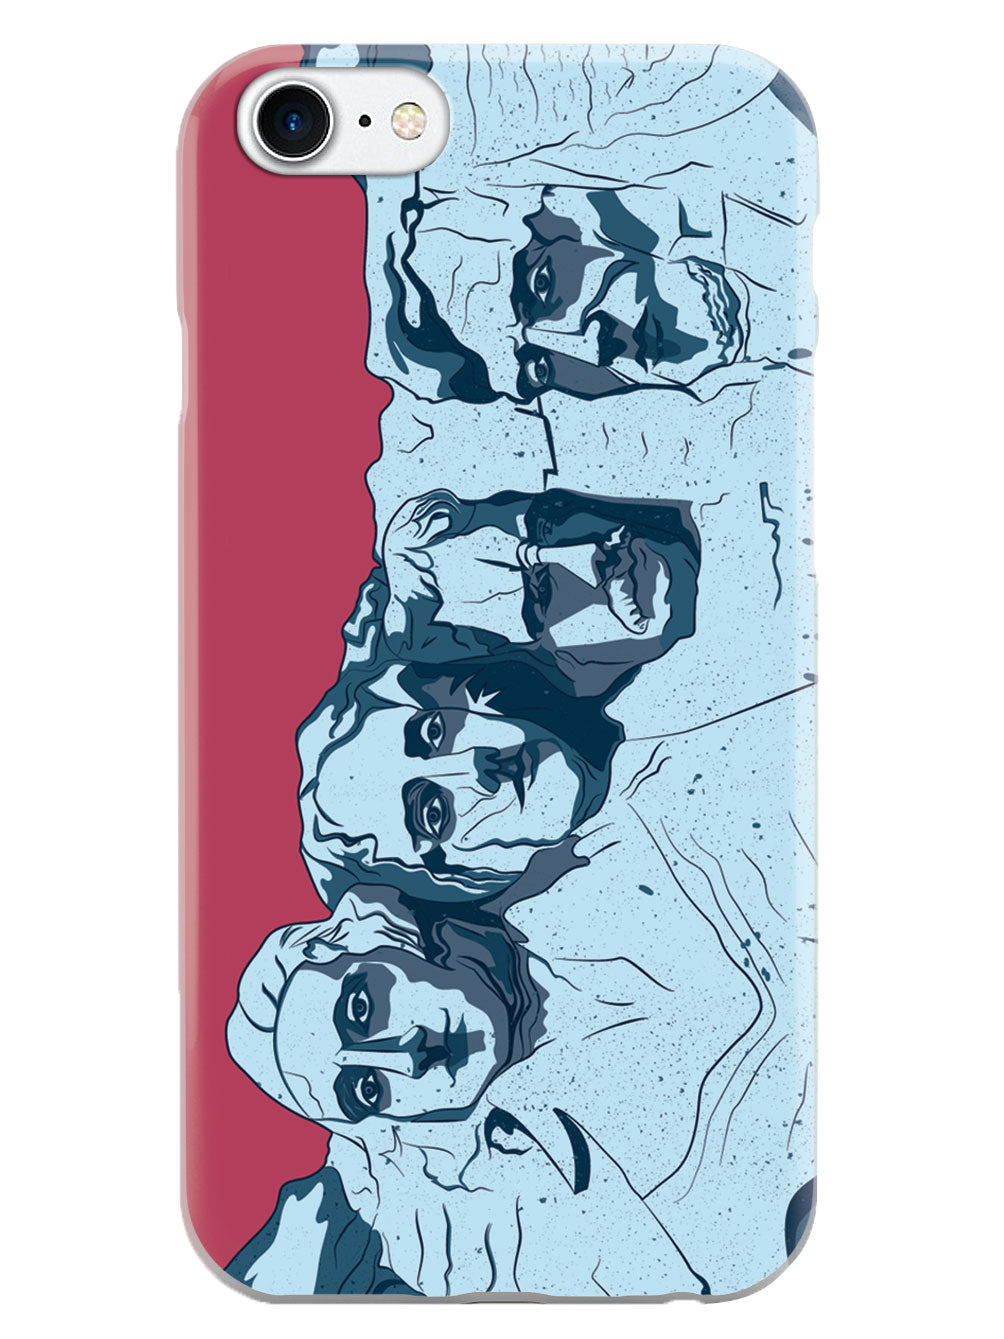 Mt. Rushmore - White Case